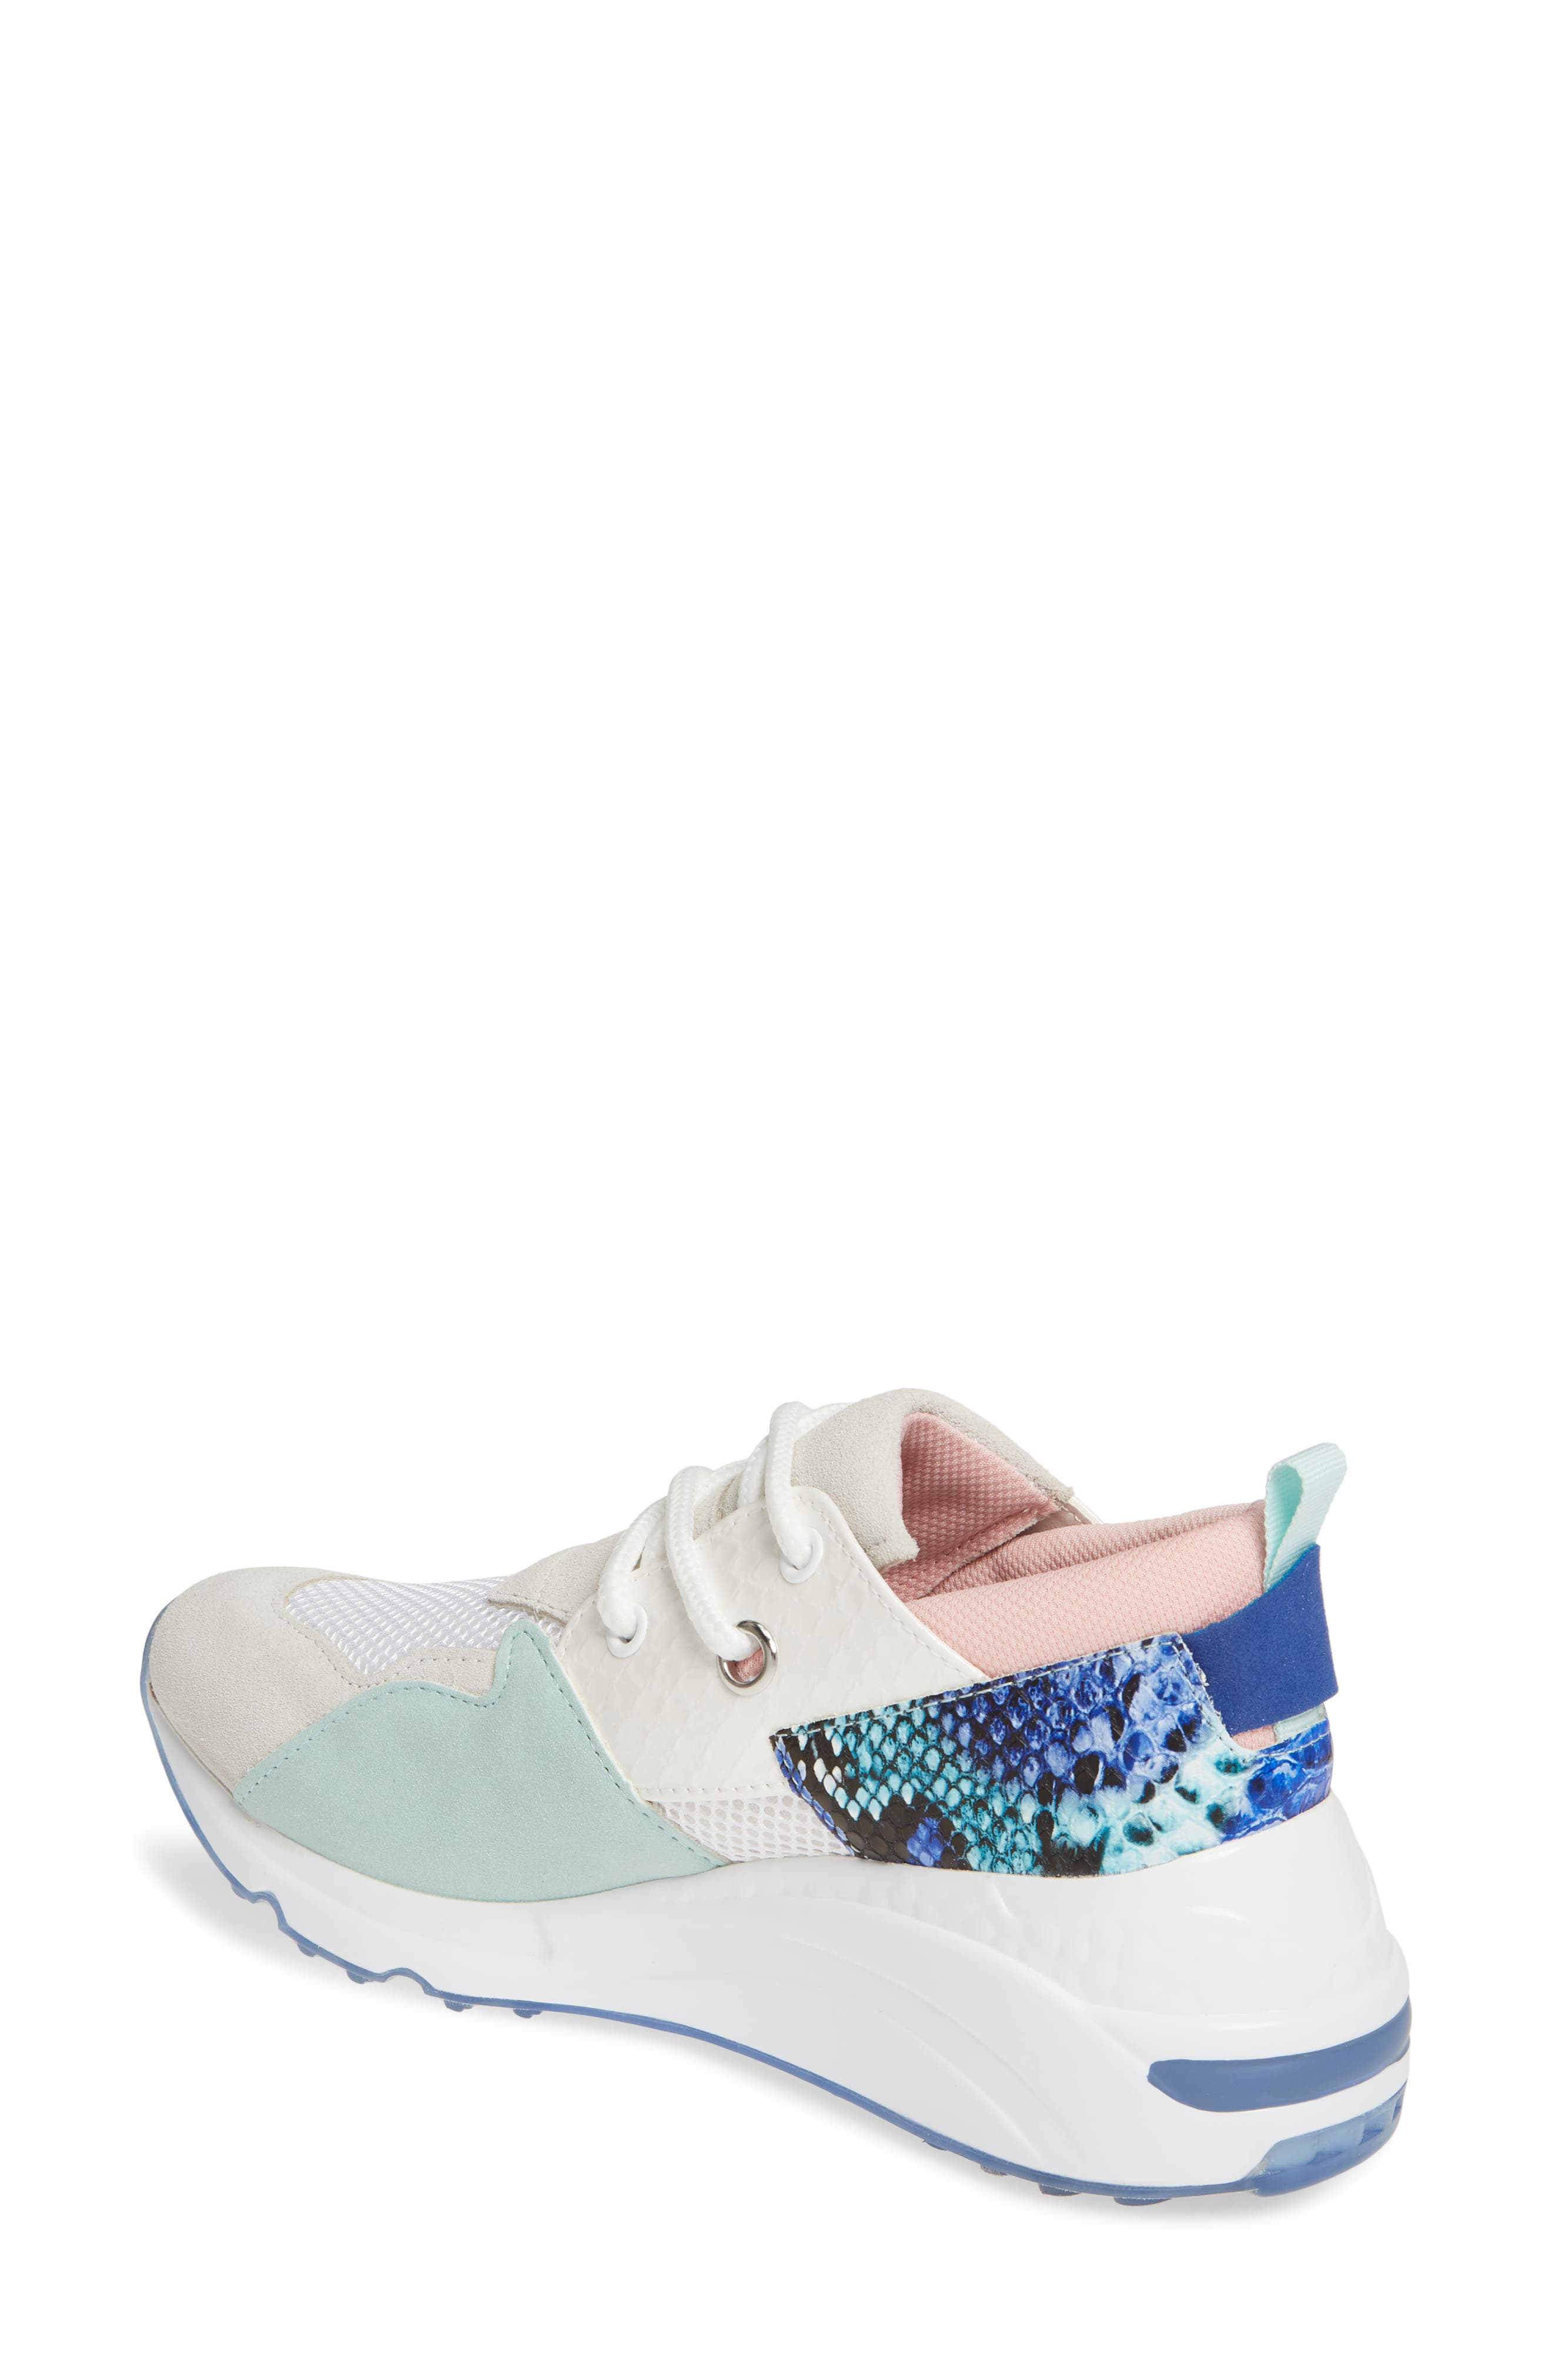 34e2ff56526 Steve Madden Sneakers for Women